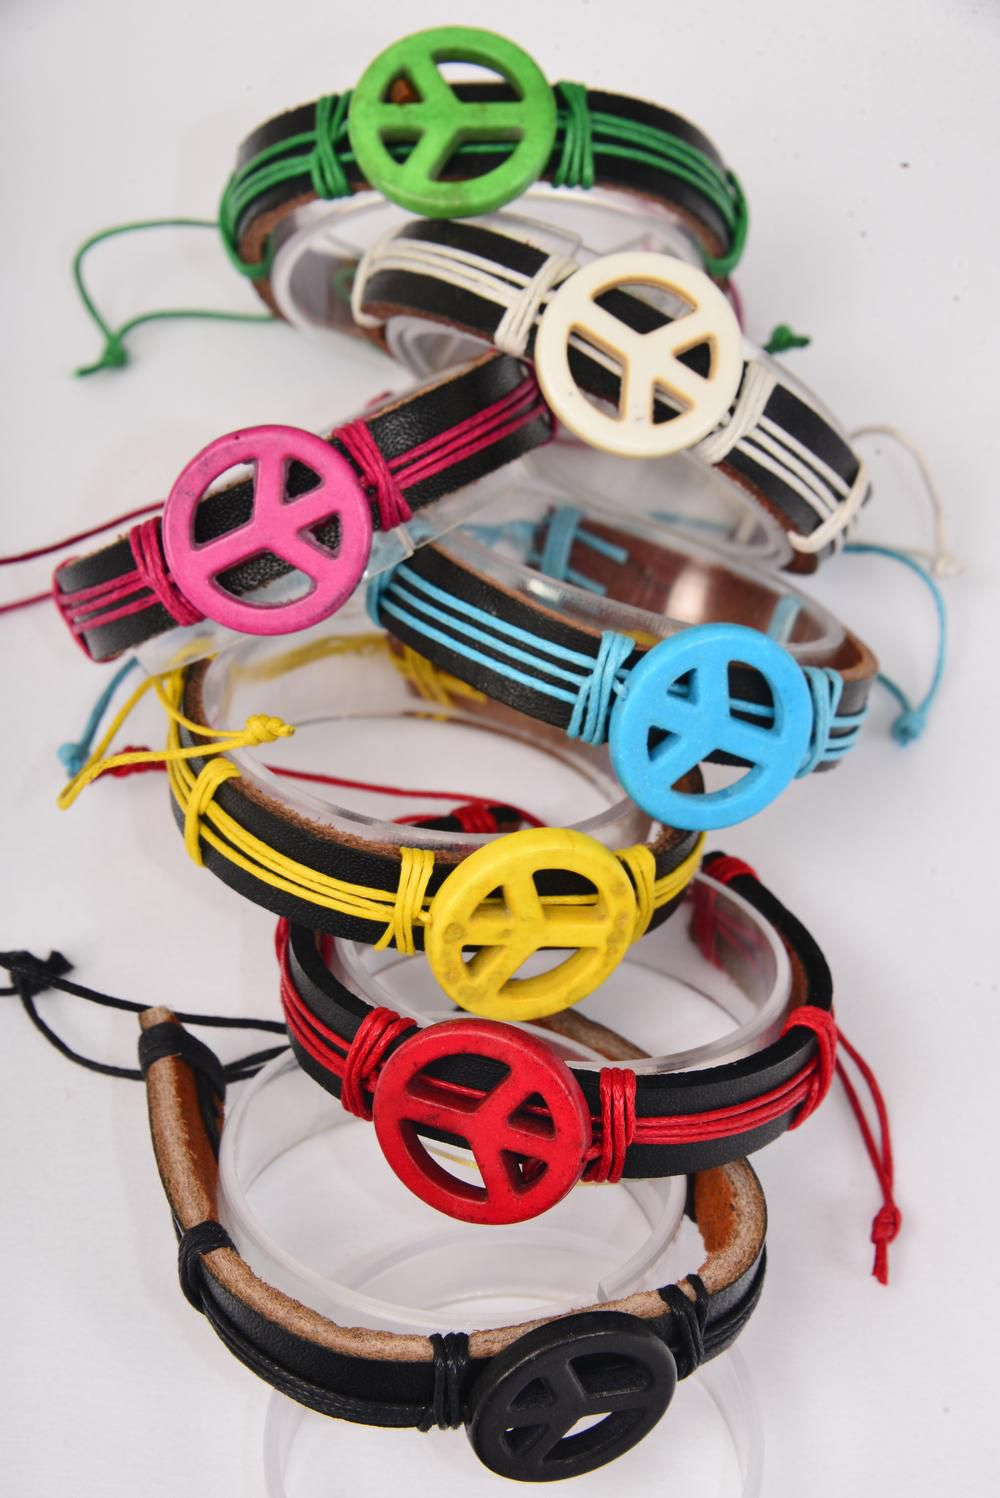 "Bracelet Real leather Band Peace Sign Semiprecious Stone/DZ **Unisex** Adjustable,Peace-1"" Wide,2 Black,2 Ivory,2 Blue,2 Yellow,1 Fuchsia,2 Red,1 Green,7 Color Mix,Hang Tag & OPP Bag & UPC Code -"